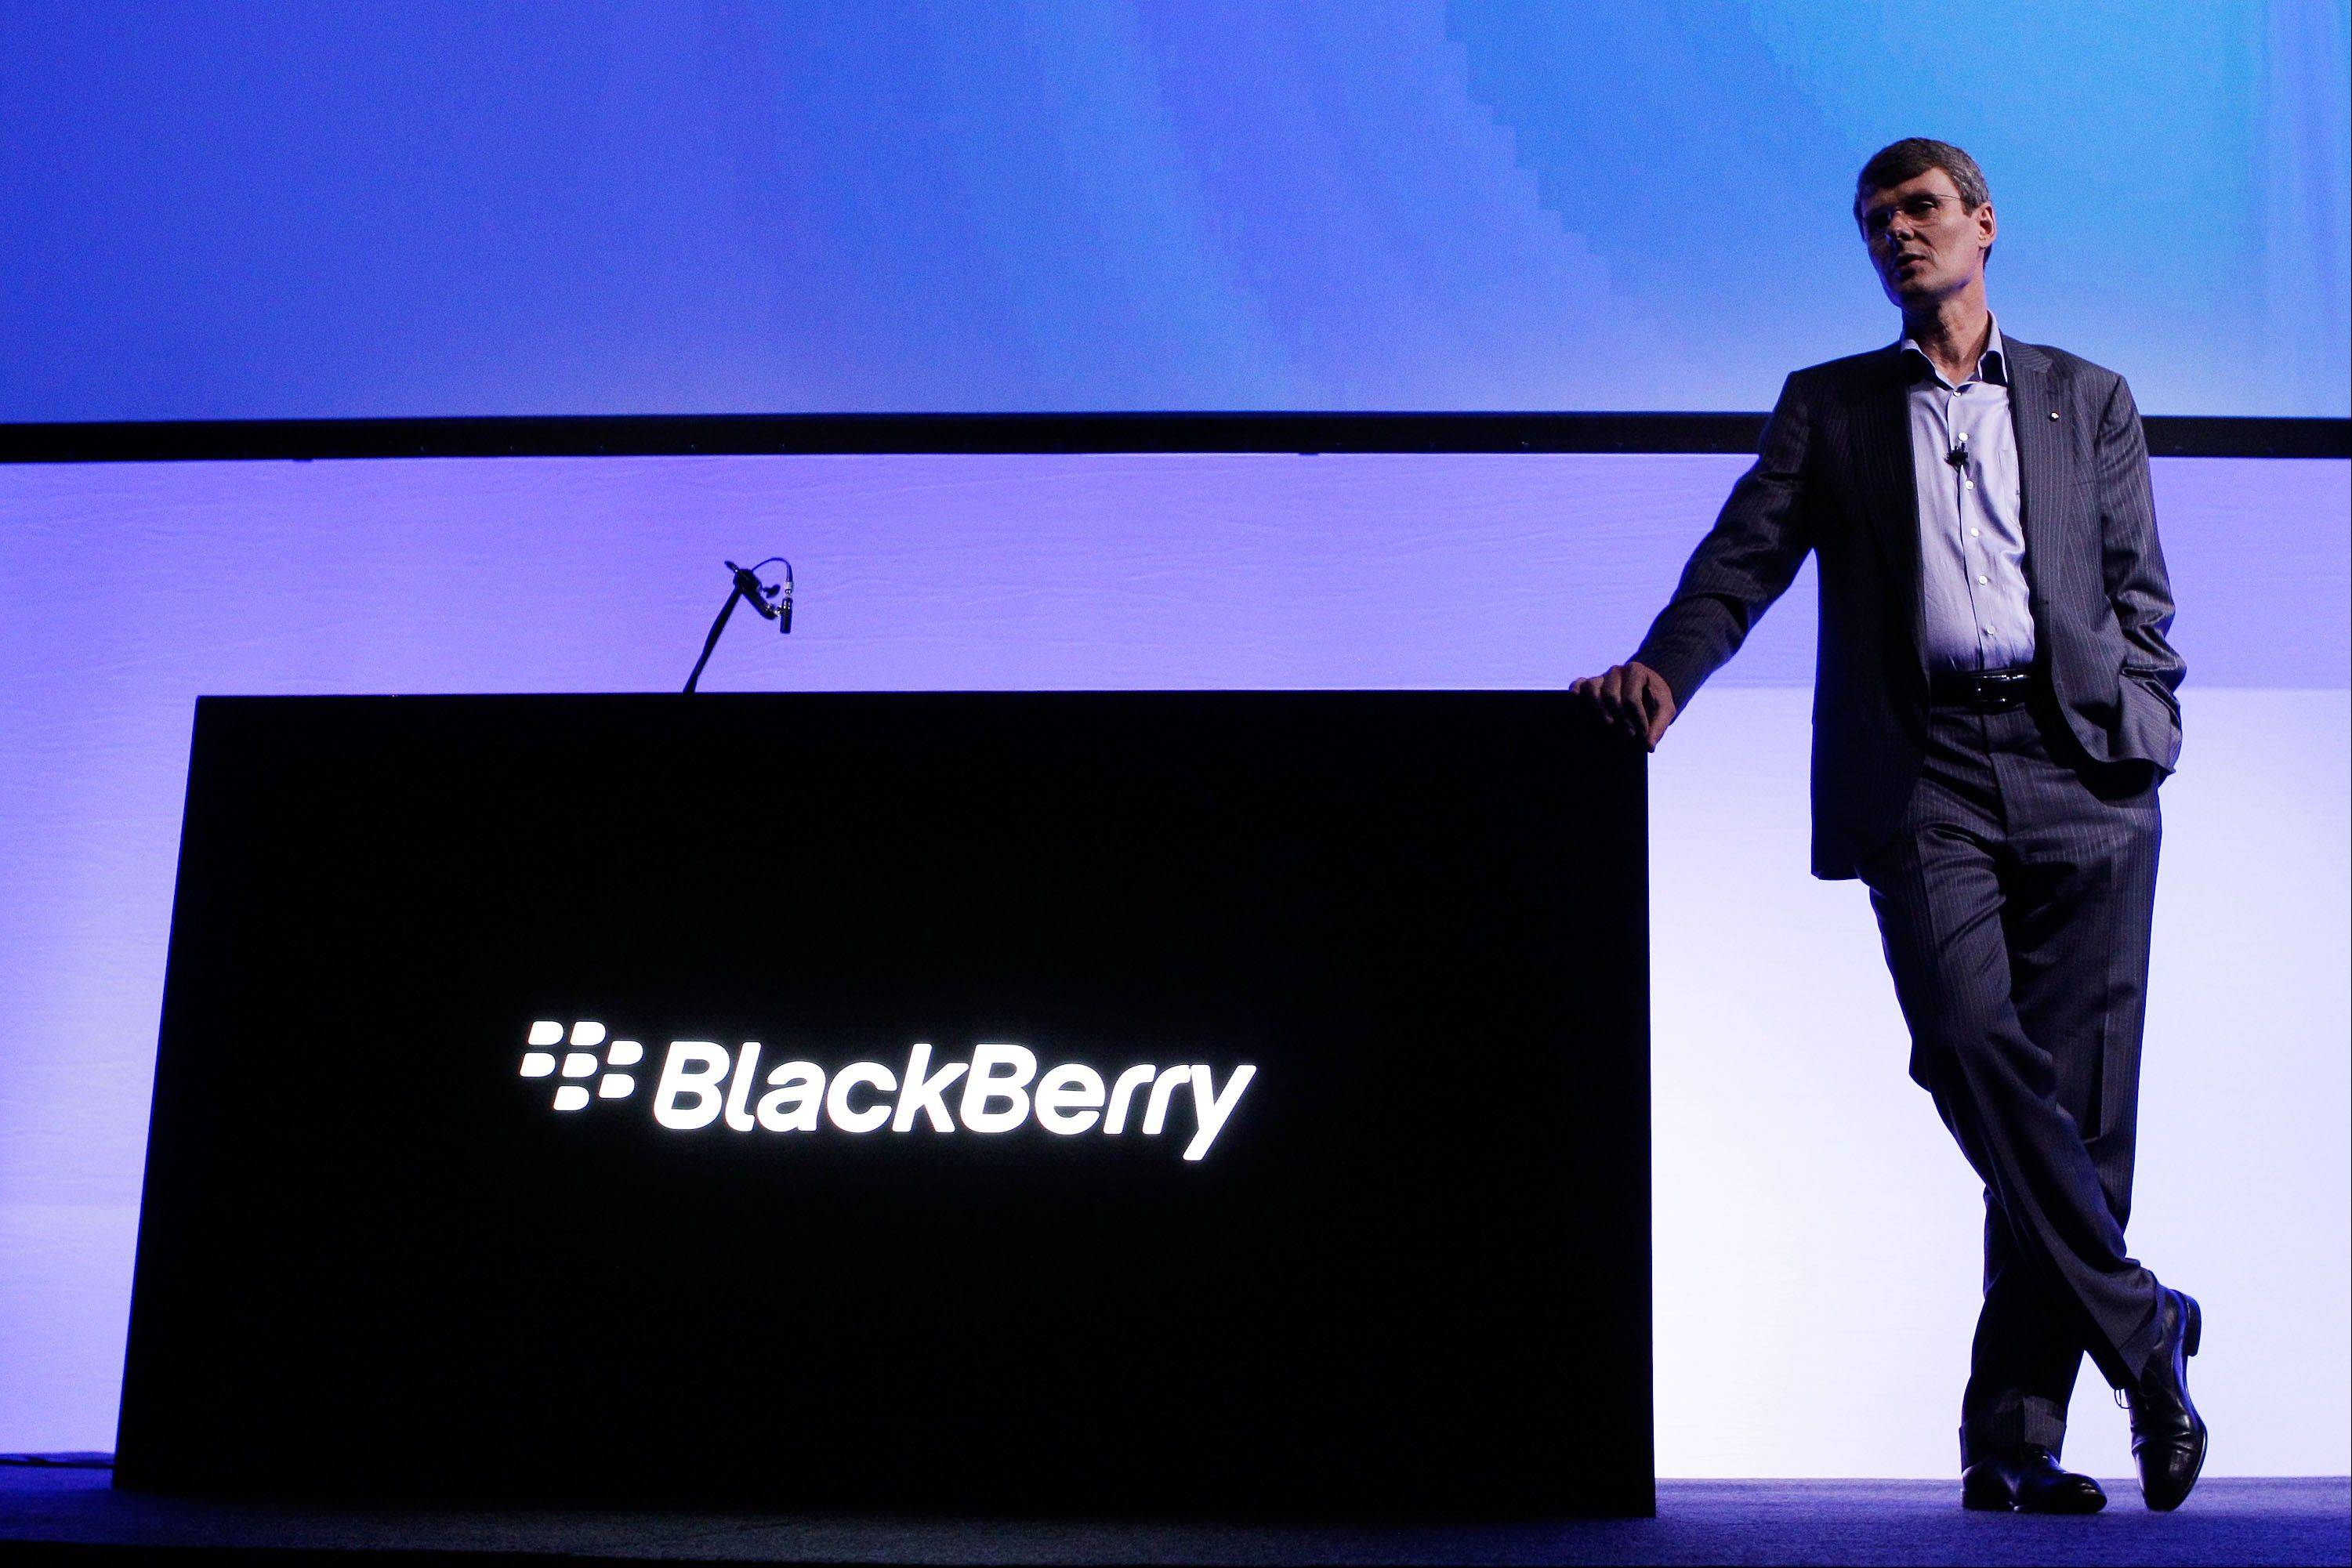 Thorsten Heins, chief executive officer of BlackBerry, attends the launch of the BlackBerry Z10 smartphone in Sydney, Australia, on Monday, March 18, 2013.